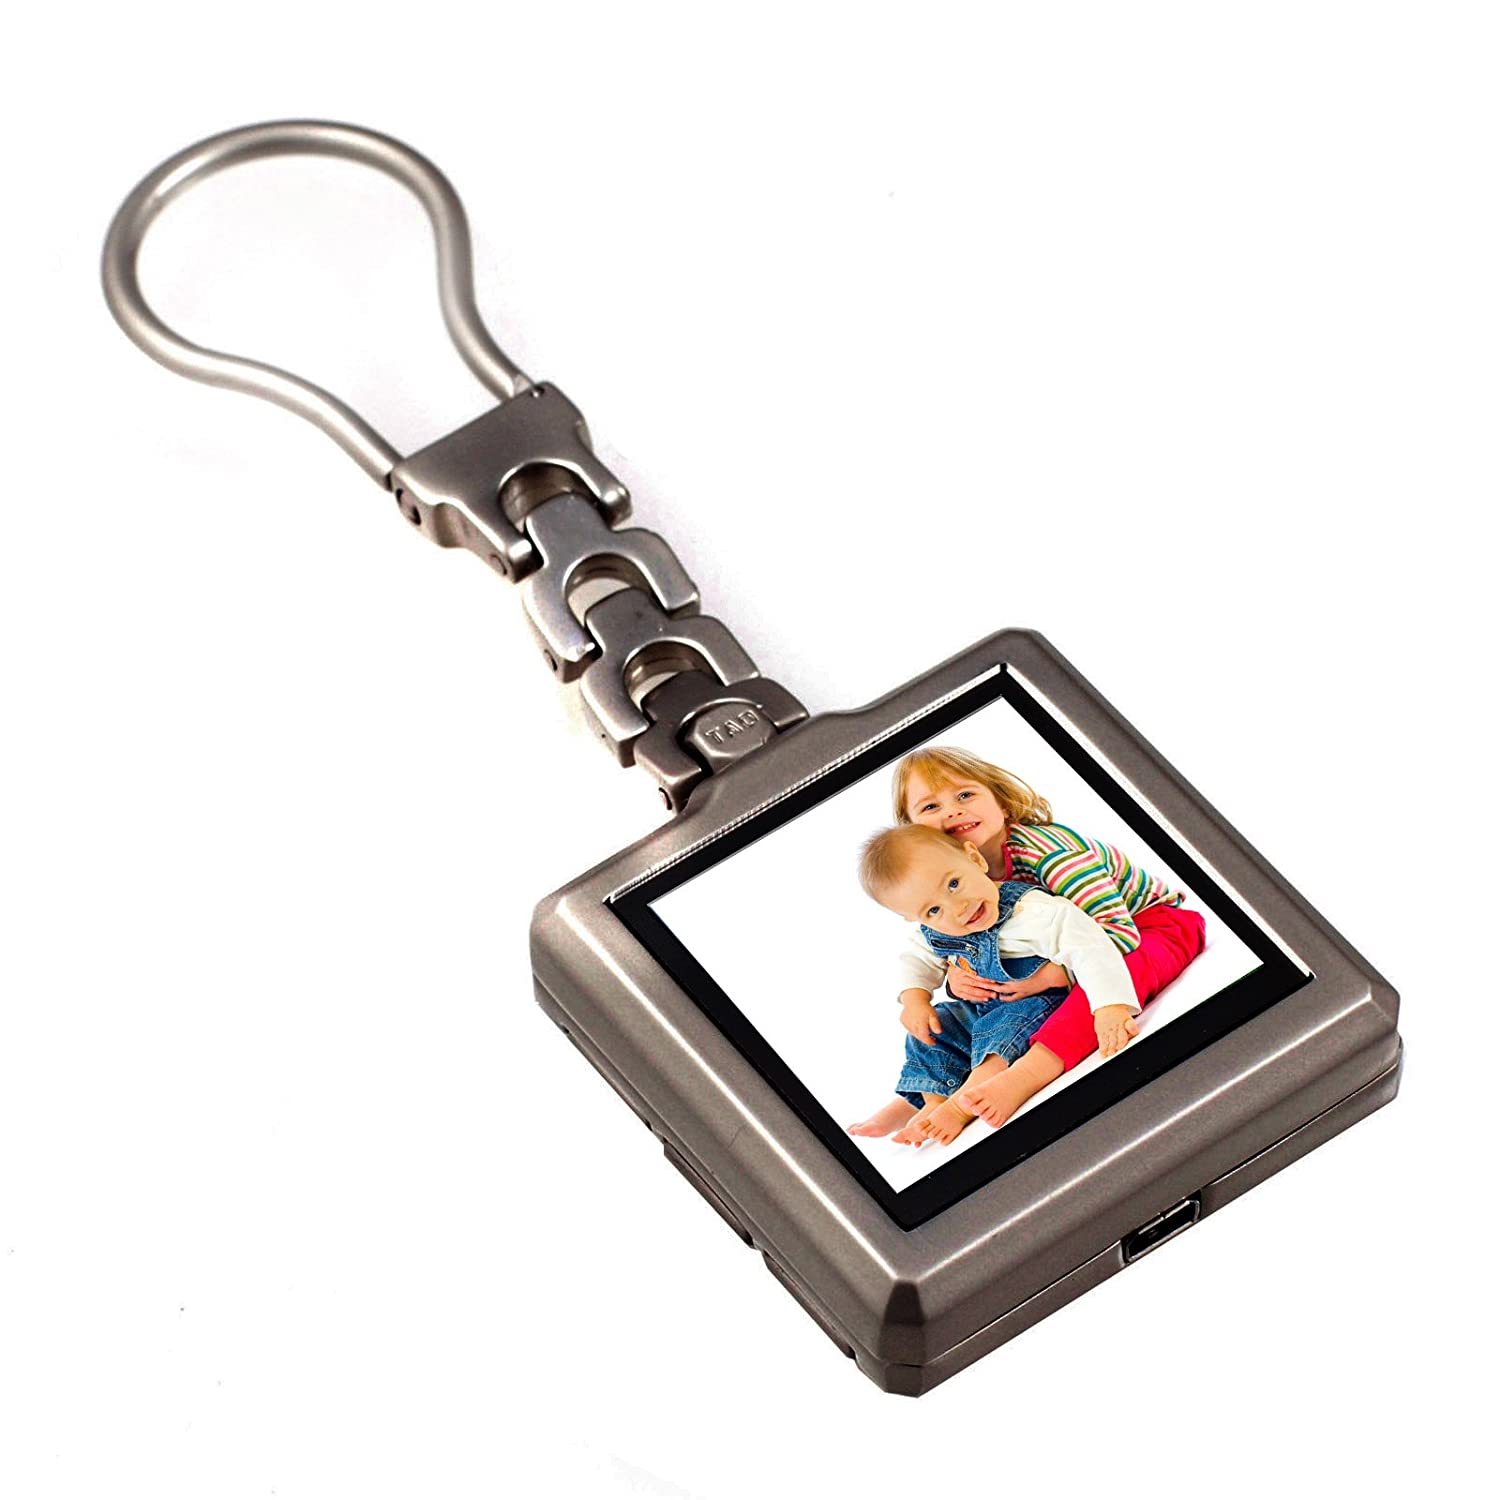 Amazon tao 80001 15 inch digital photo keychain brushed amazon tao 80001 15 inch digital photo keychain brushed metal automotive key chains camera photo jeuxipadfo Choice Image